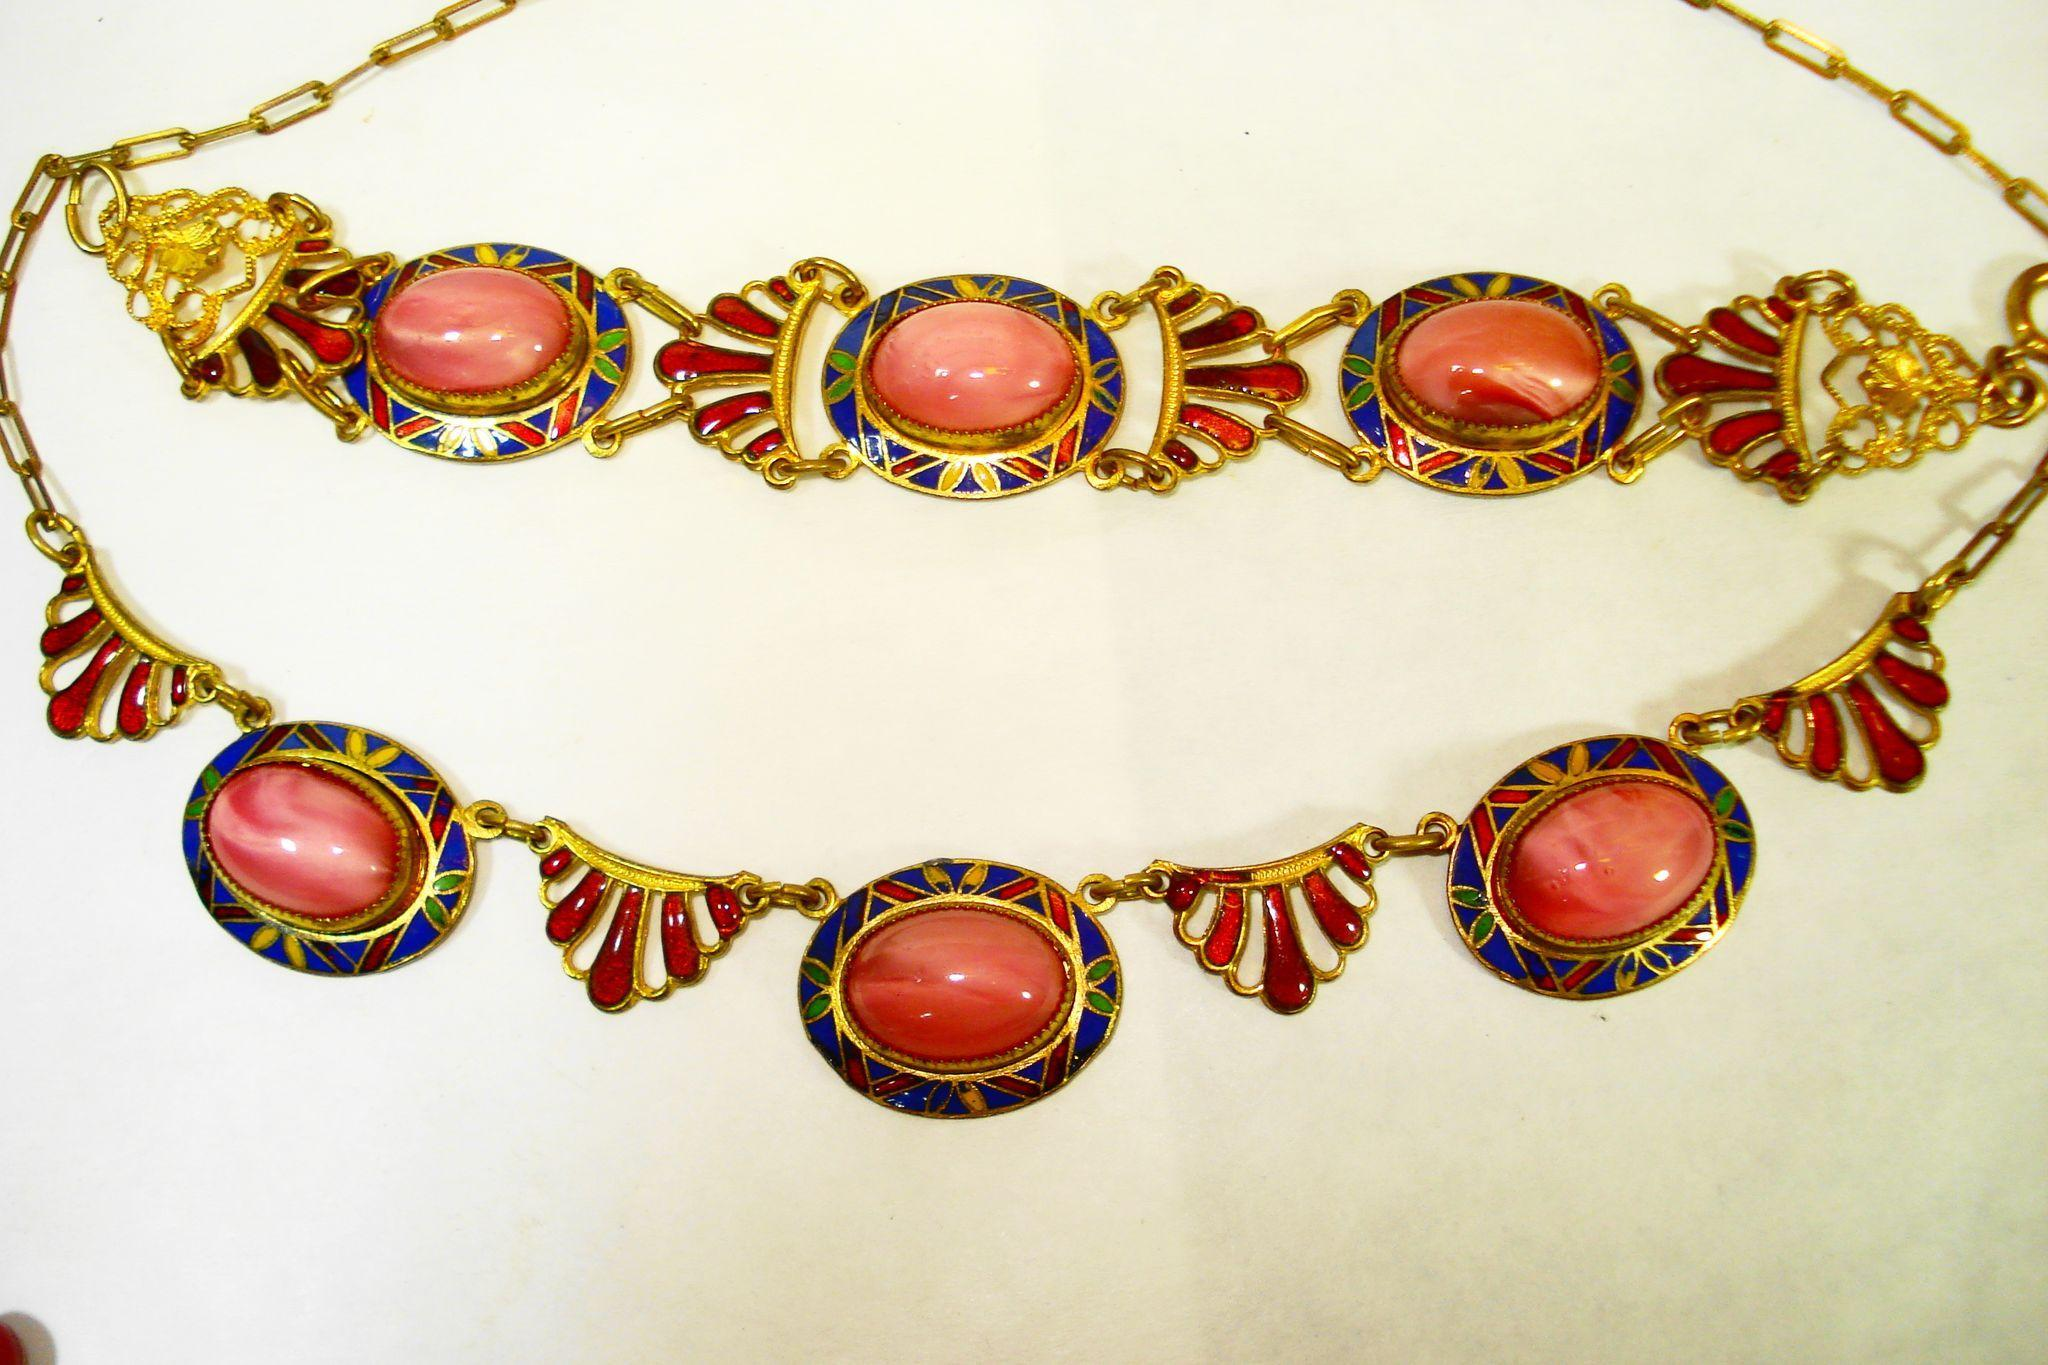 1920s Czech Enamel Art Glass Necklace Bracelet Set